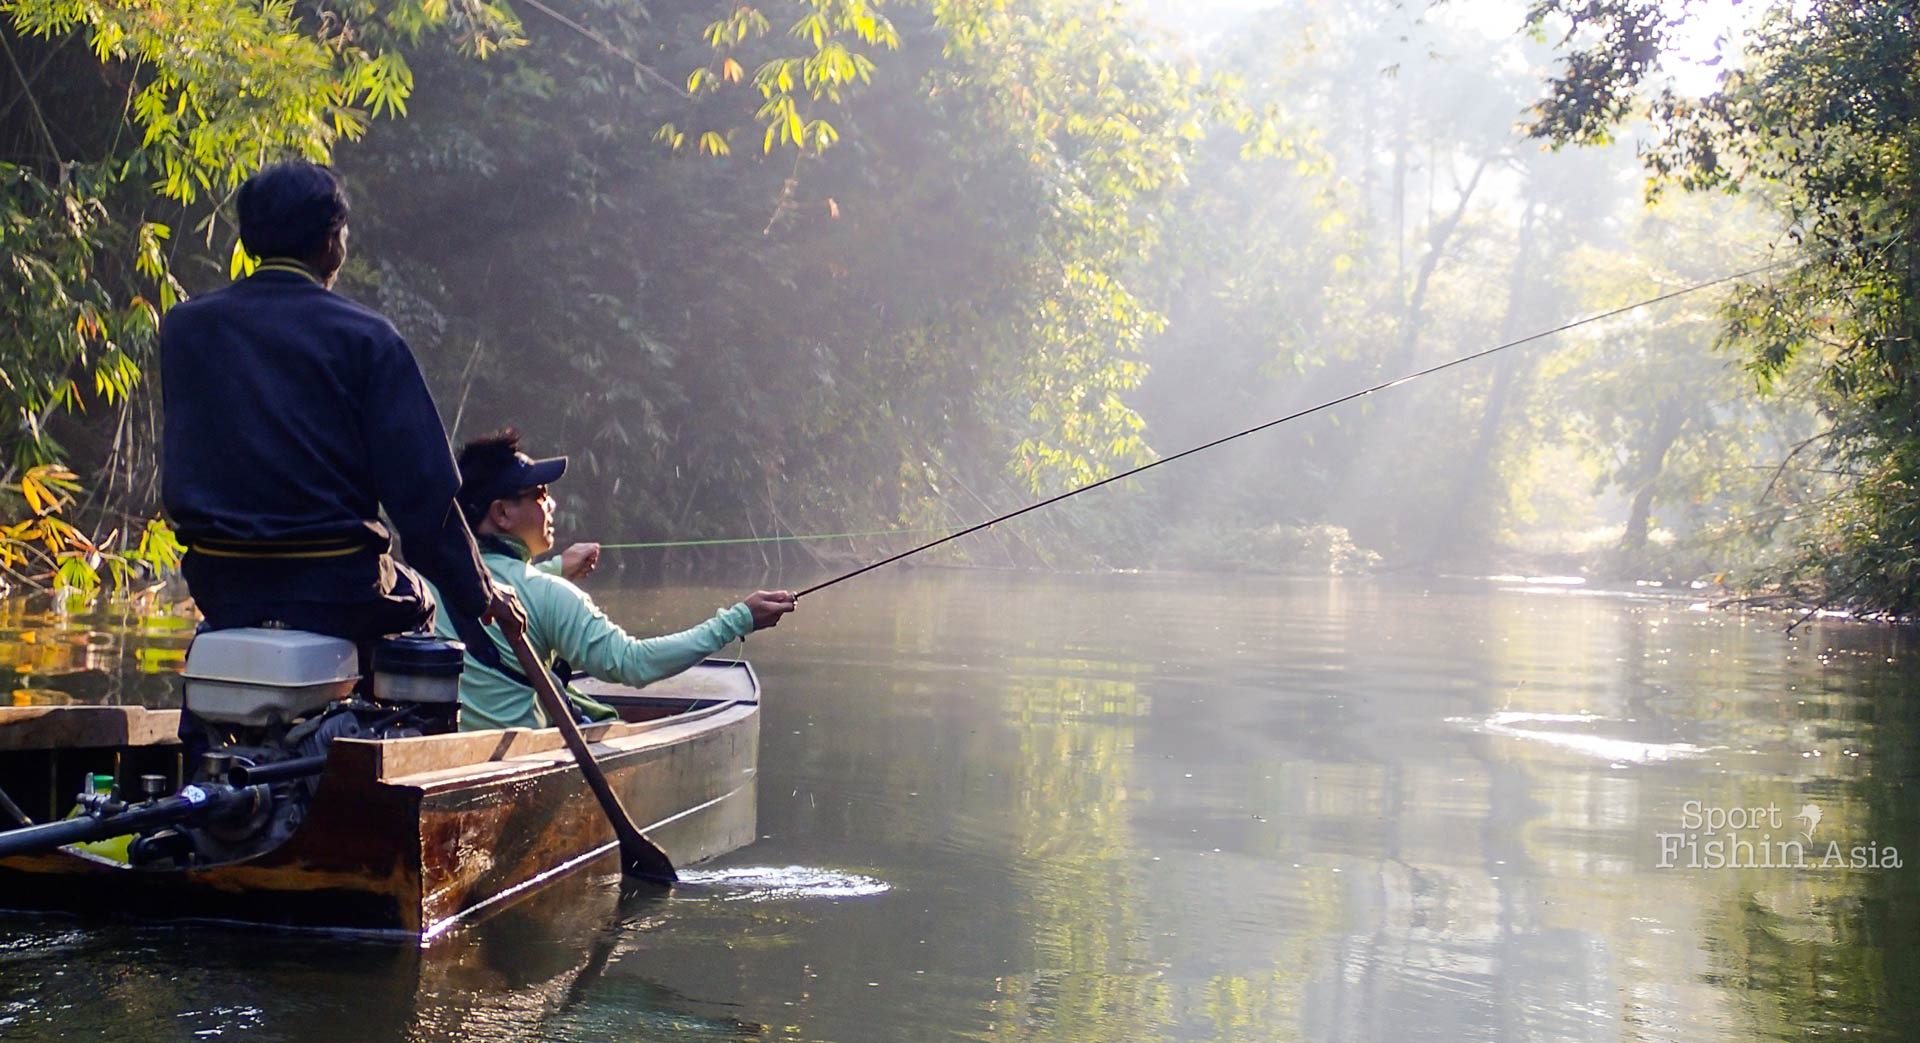 thai-mahseer-fly-fishing_140205_8459_1920